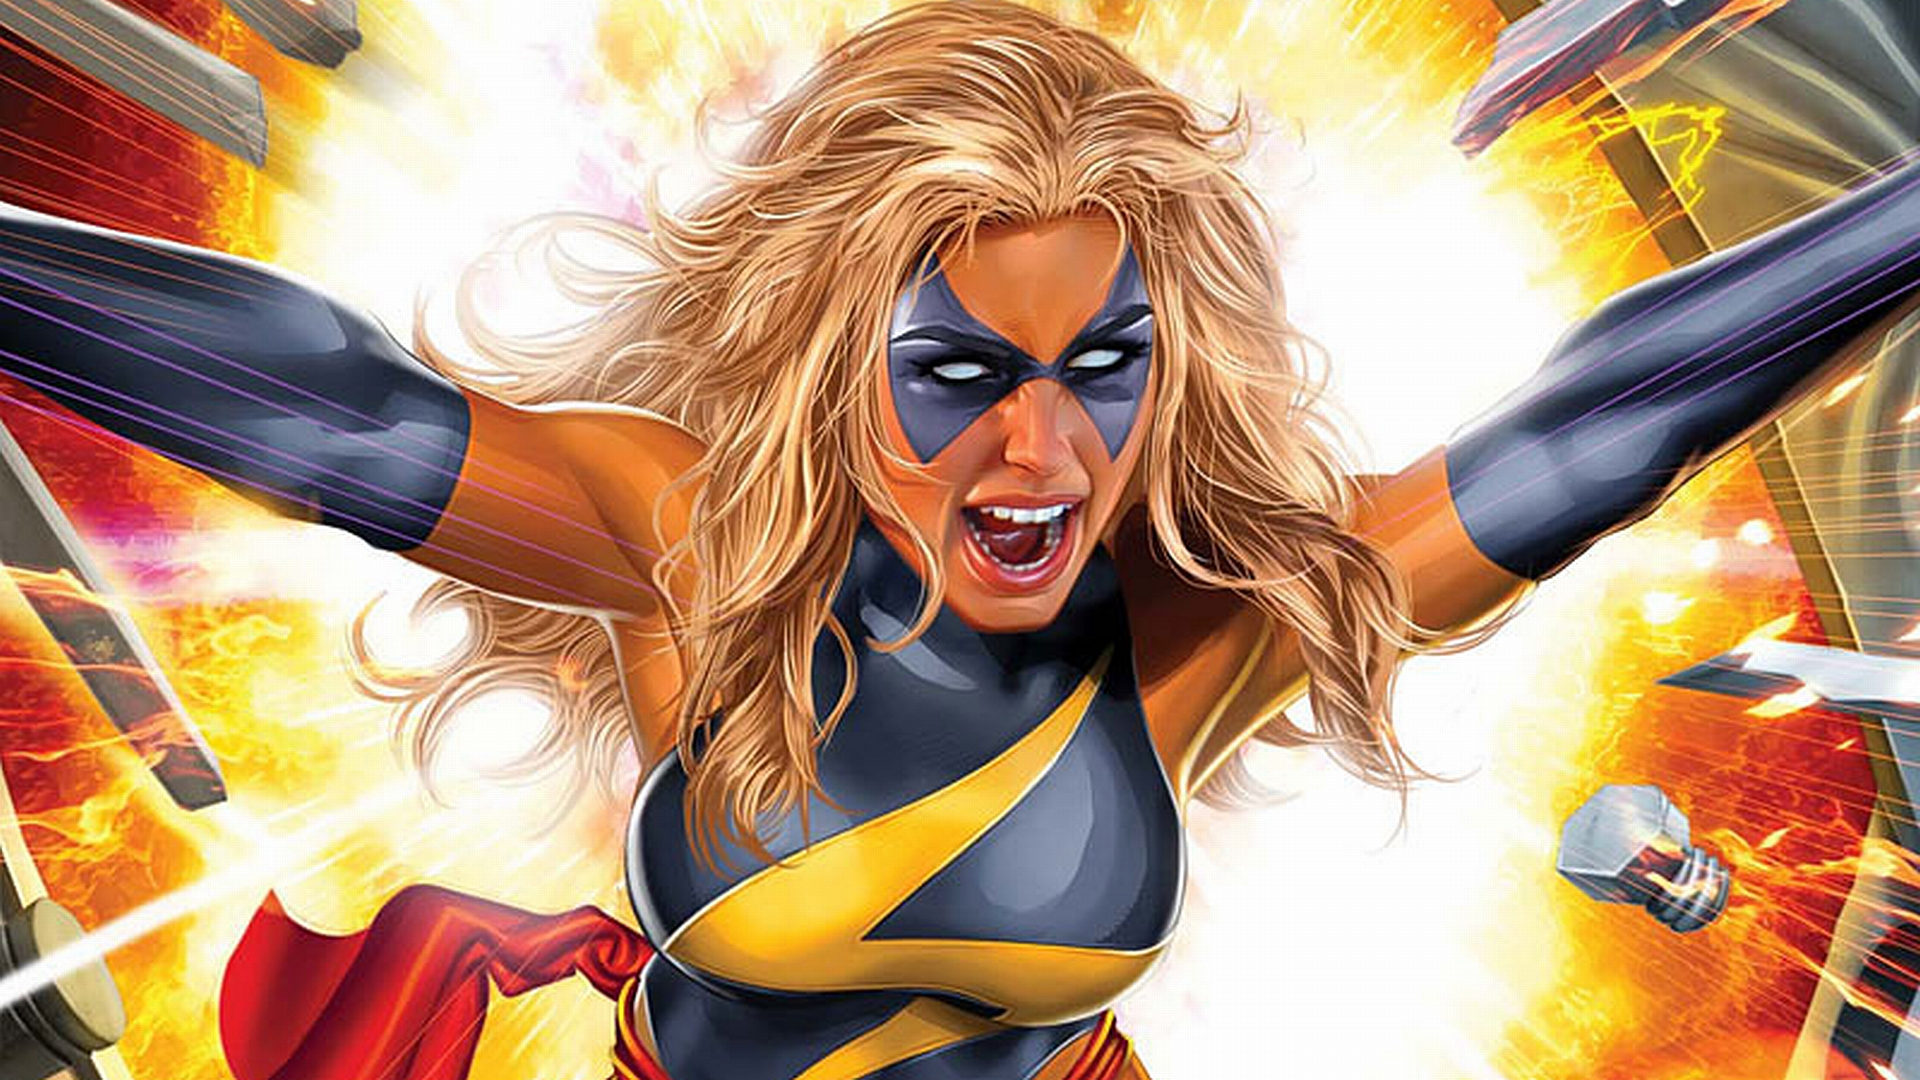 72 Ms Marvel HD Wallpapers Backgrounds 1920x1080